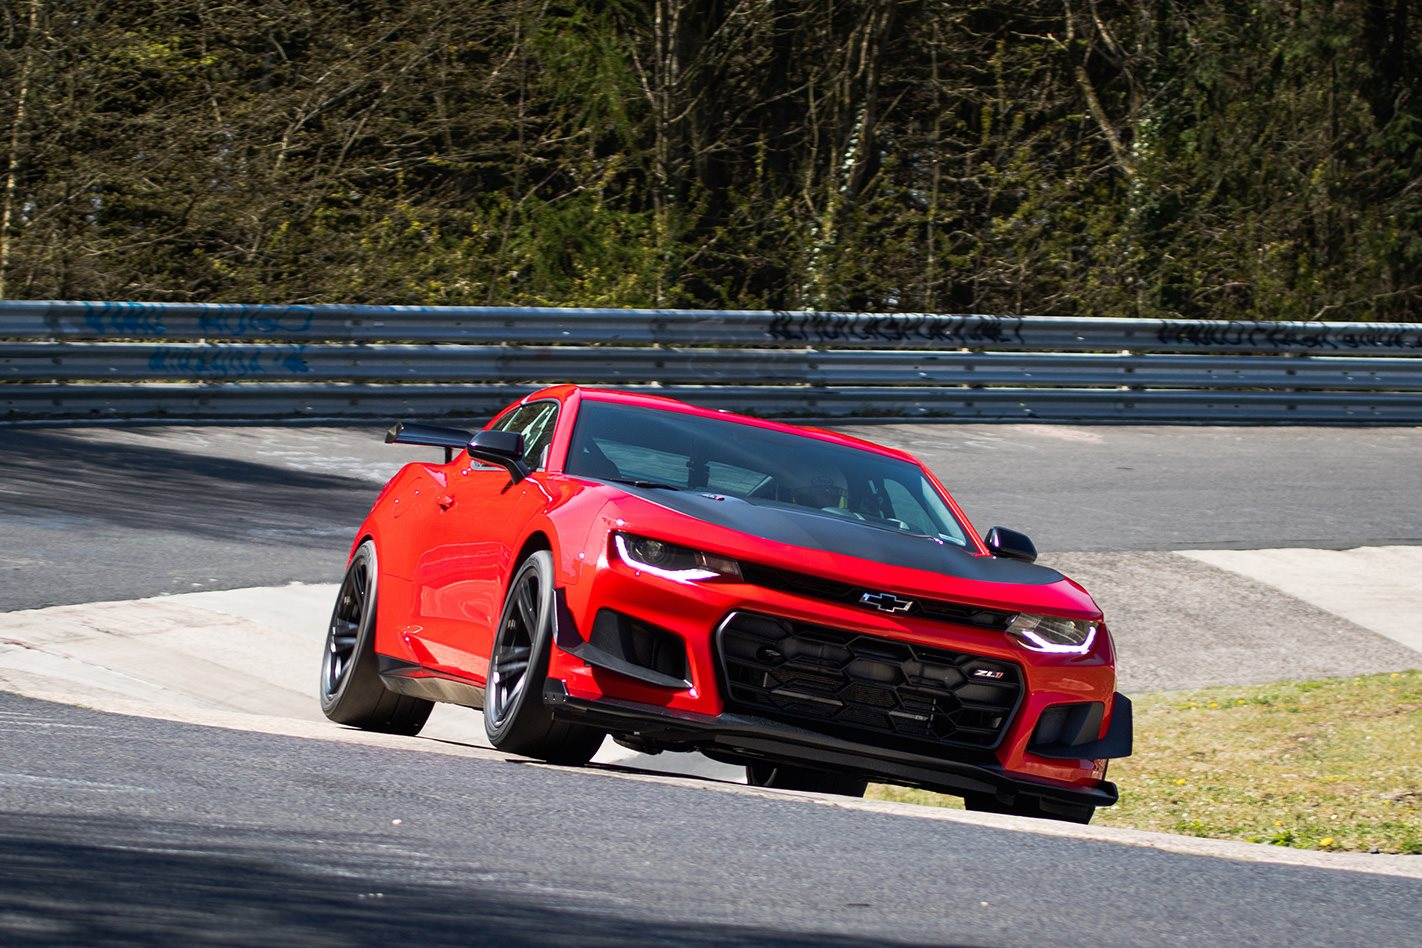 2018 Chevrolet Camaro ZL1 1LE racing